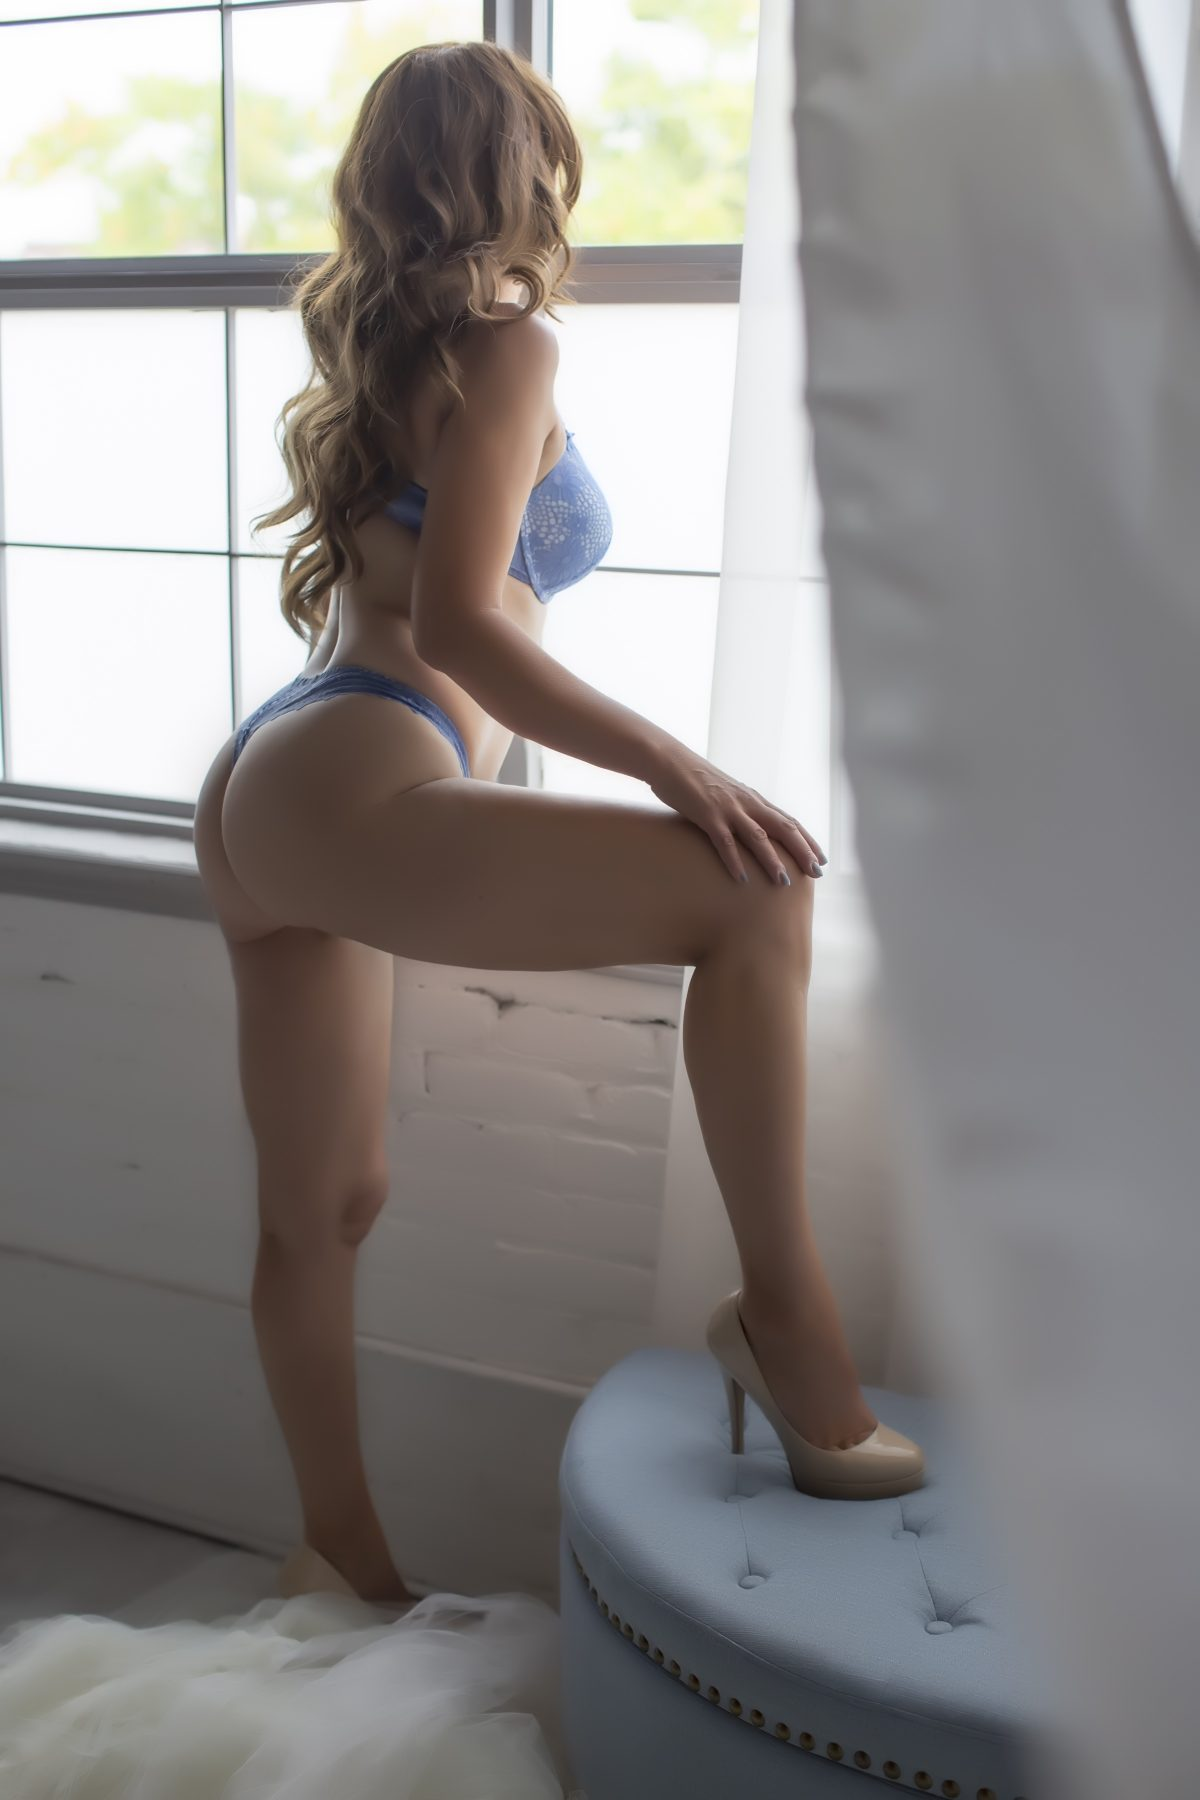 Toronto escorts companion upscale Annika Duo Couple-friendly Non-smoking Mature Slender Curvy Tall Breasts Natural Brunette Redhead European Tattoos None New Photos